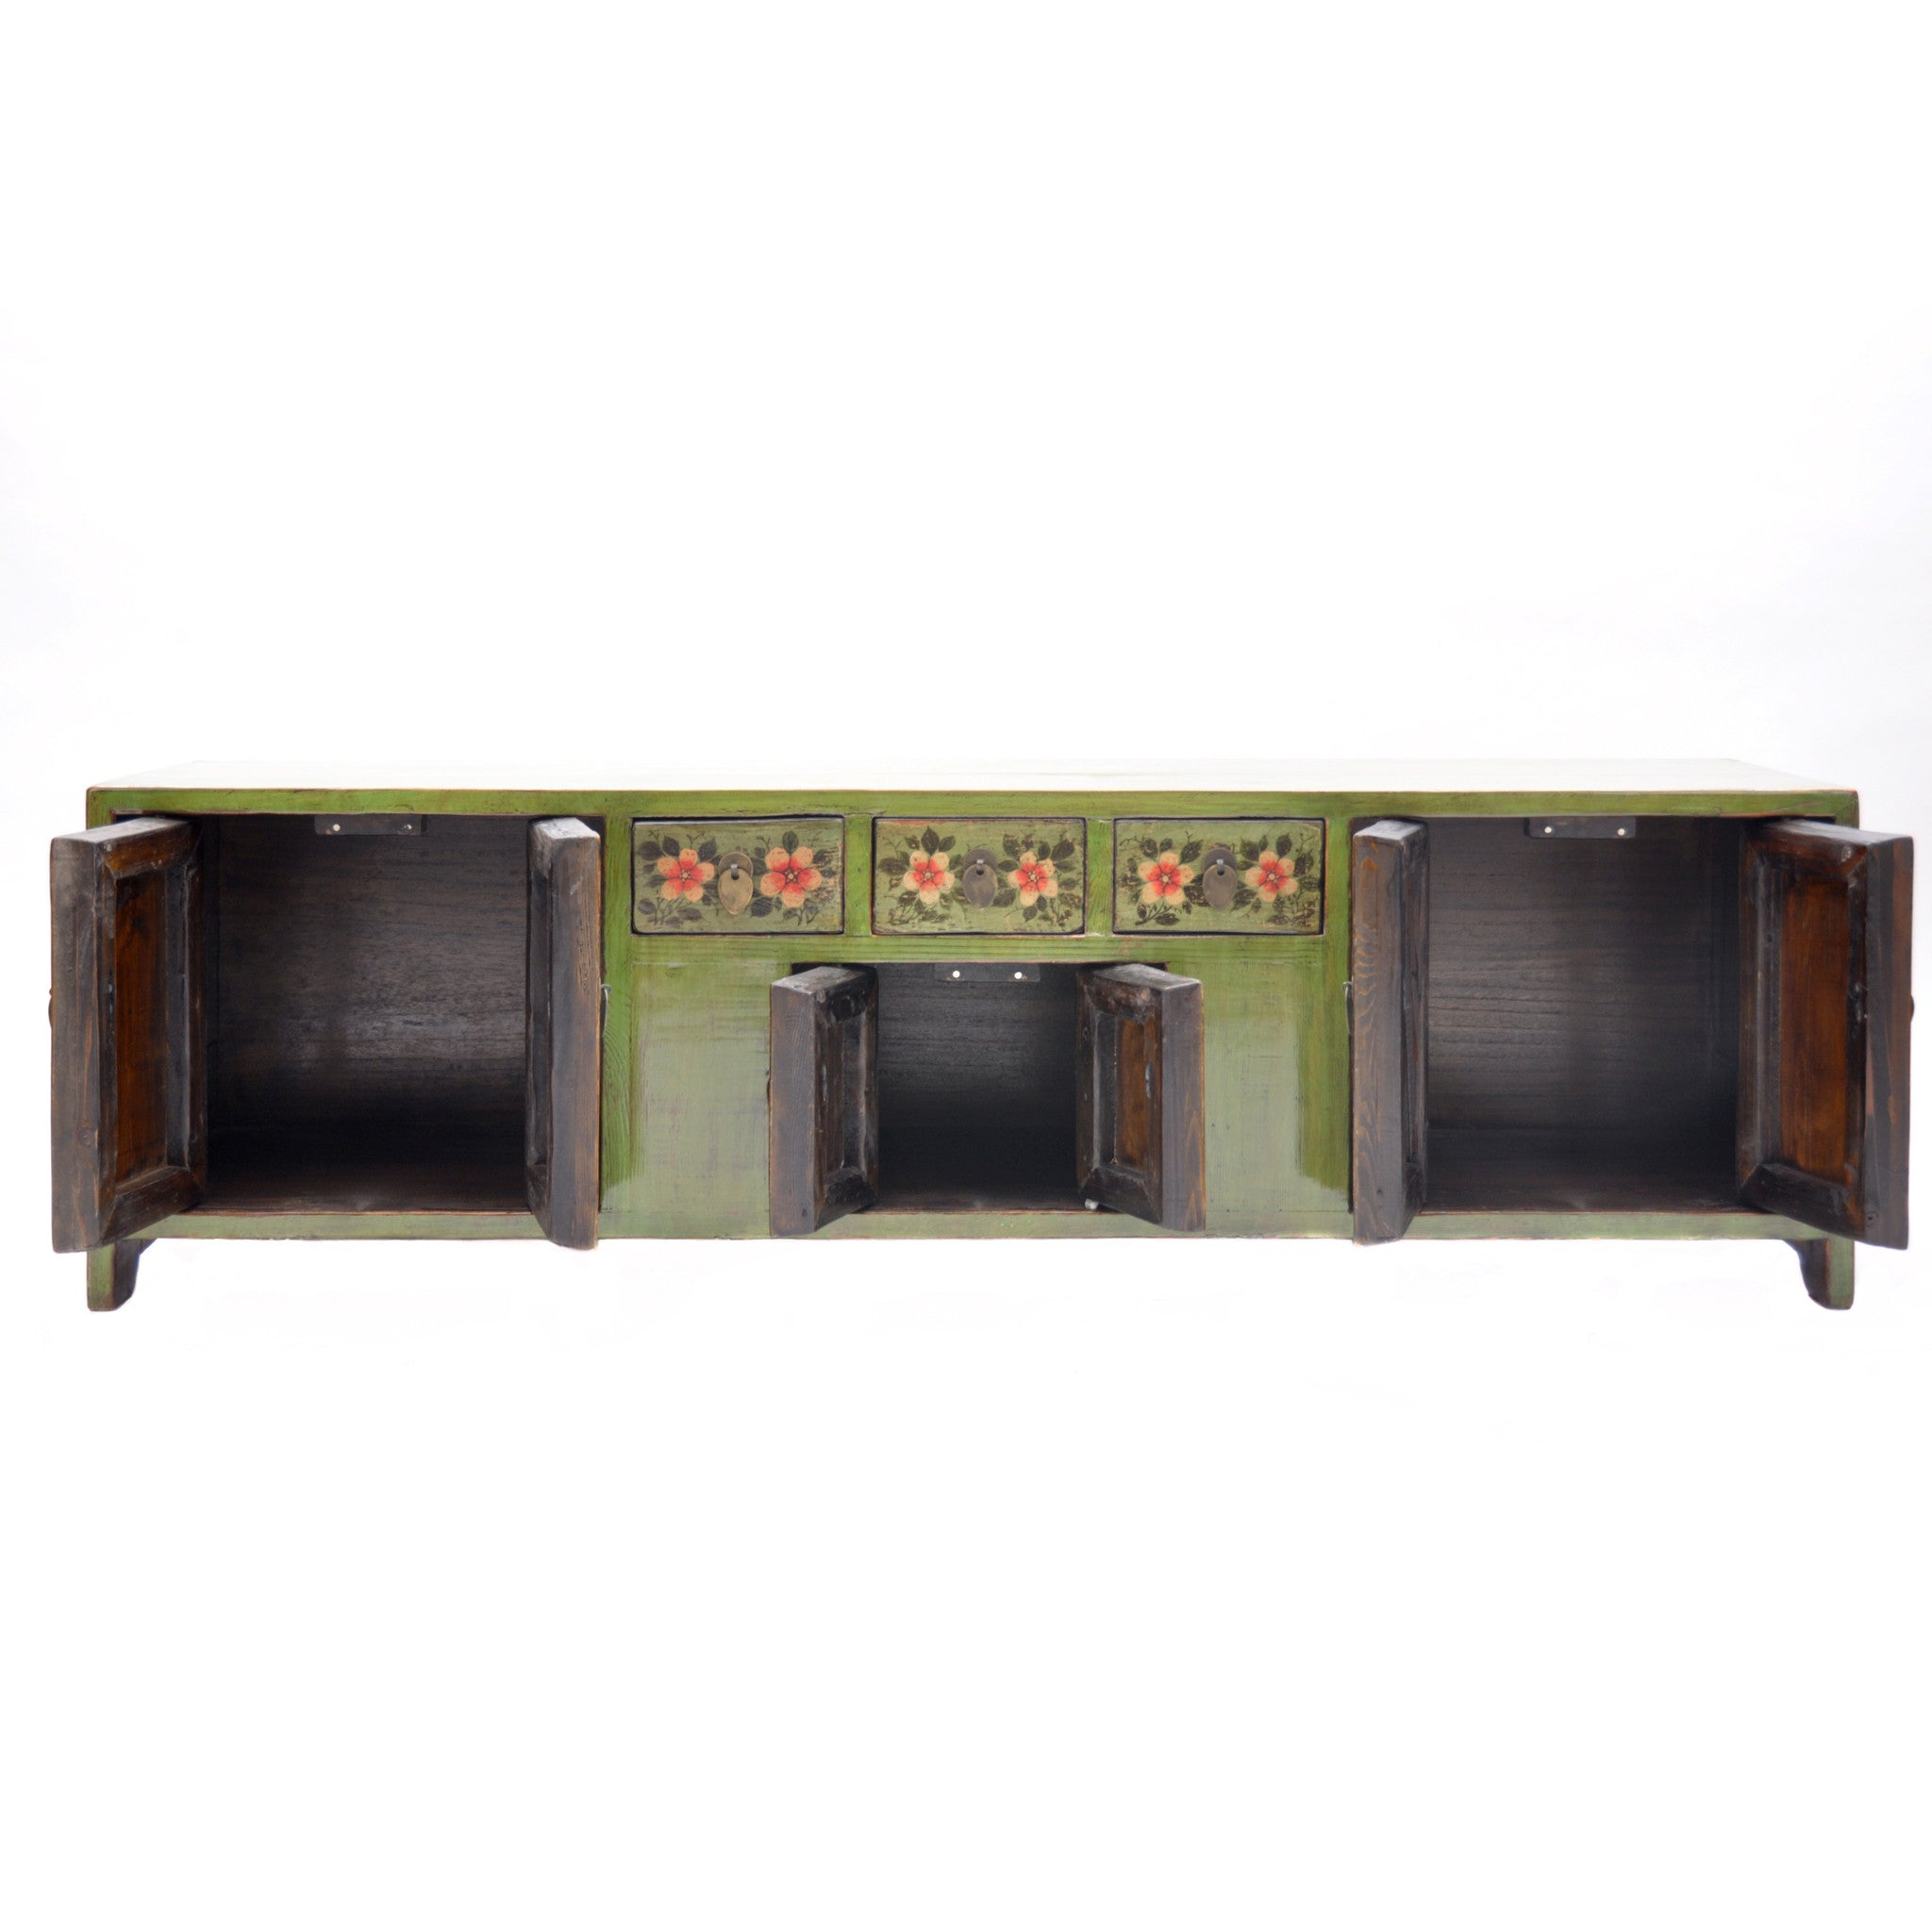 Low Green Chinese Sideboard with Red Flowers door open